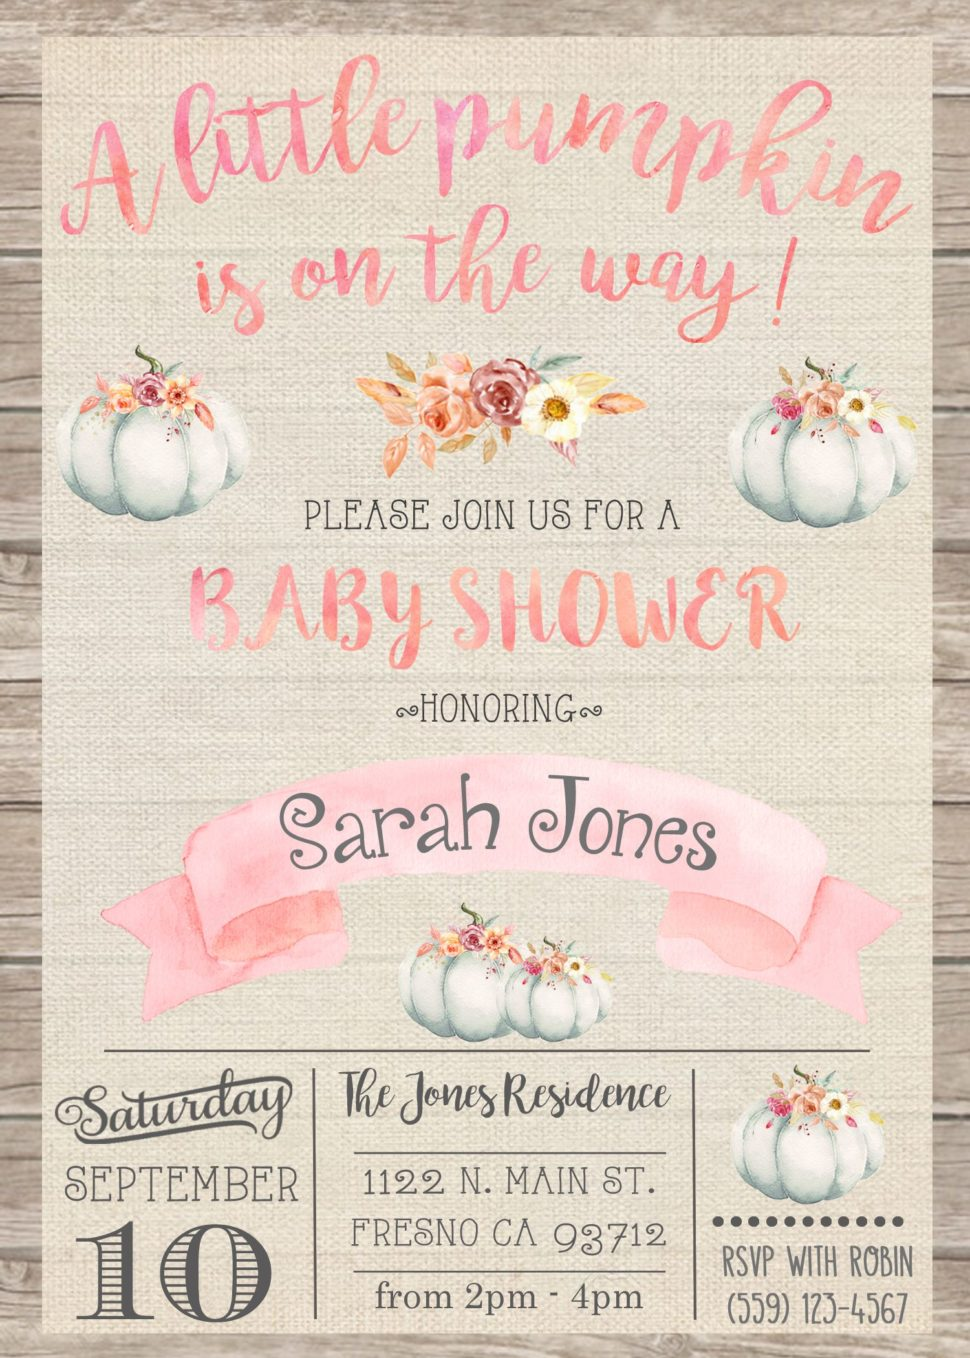 Medium Size of Baby Shower:63+ Delightful Cheap Baby Shower Invitations Image Inspirations Cheap Baby Shower Invitations Little Pumpkin Baby Shower Invitation Invite Rustic Shabby Chic Pink Little Pumpkin Baby Shower Invitation Invite Rustic Shabby Chic Pink Peach Watercolor Our Little Pumpkin A Little Pumpkin Fall Autumn Wood Burlap Flowers